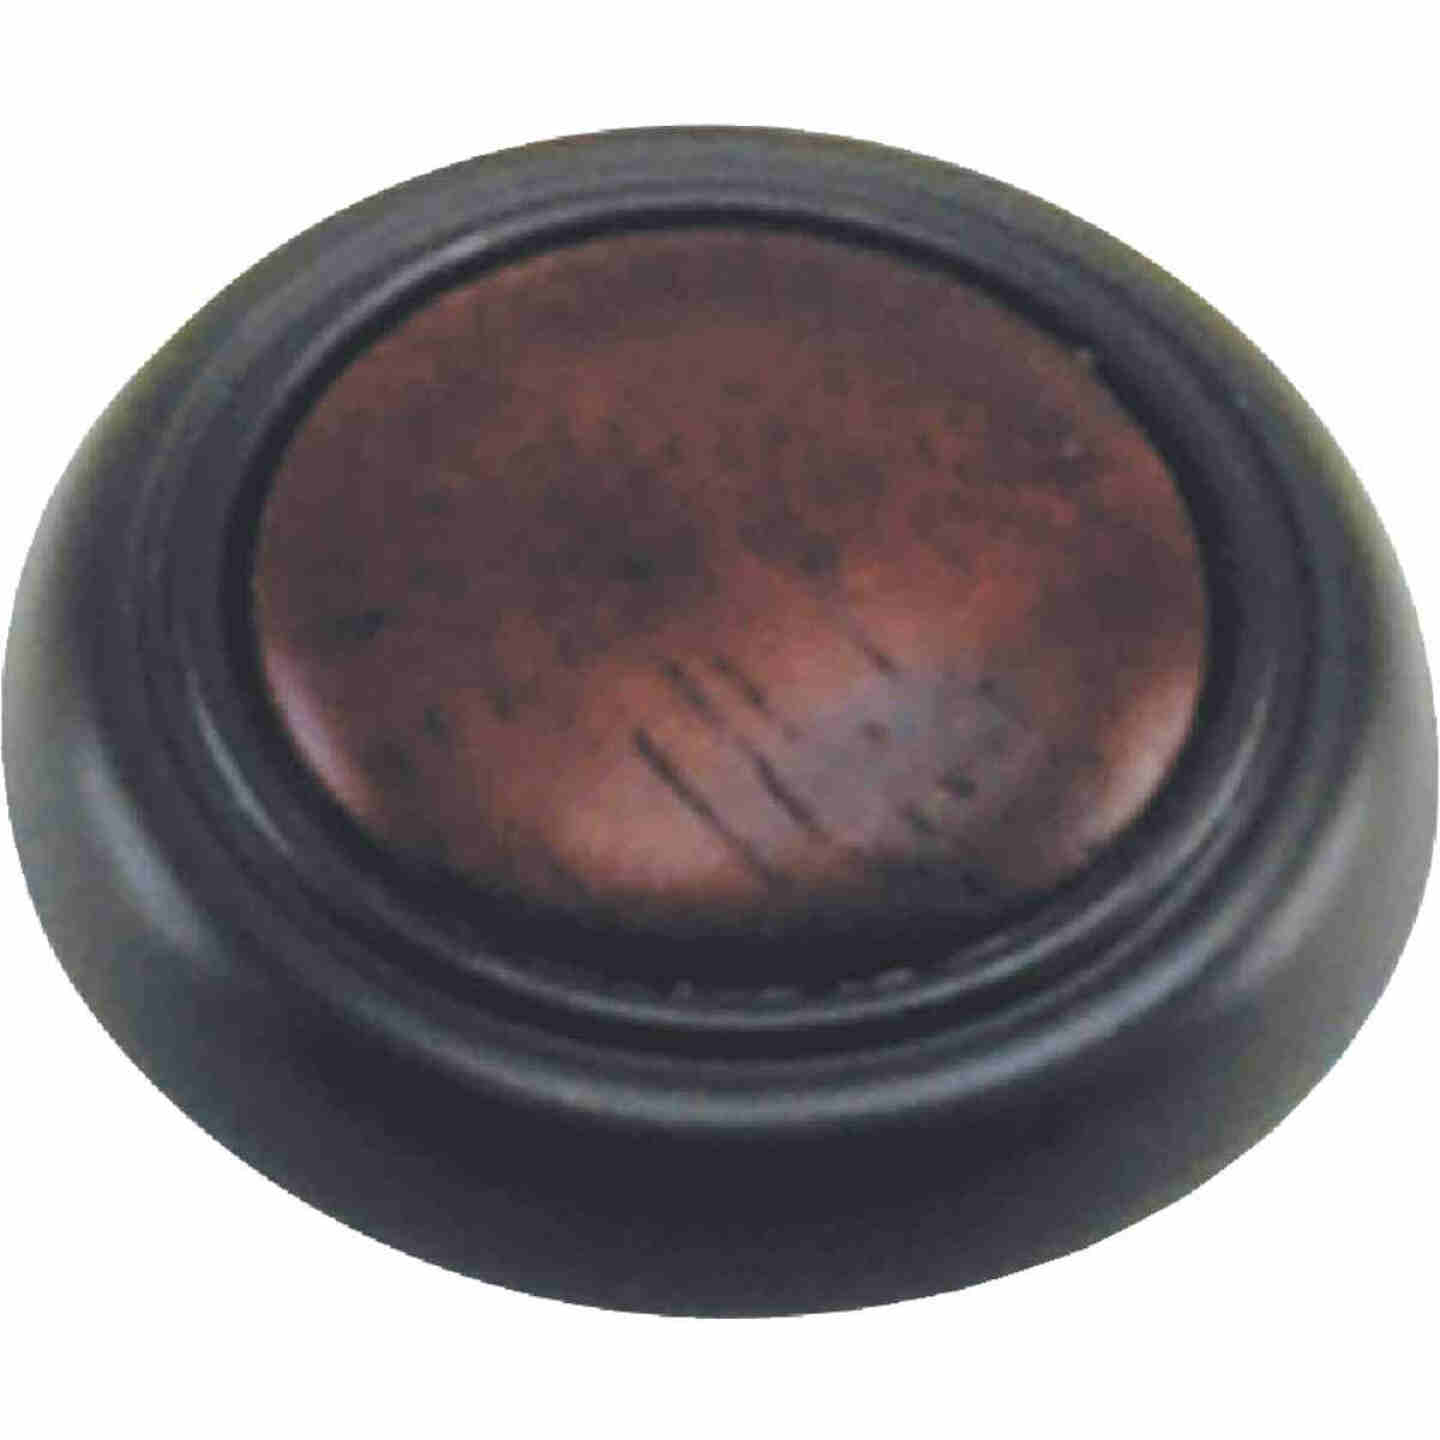 Laurey Oil Rubbed Bronze & Cherry Accent 1-1/4 In. Cabinet Knob Image 1